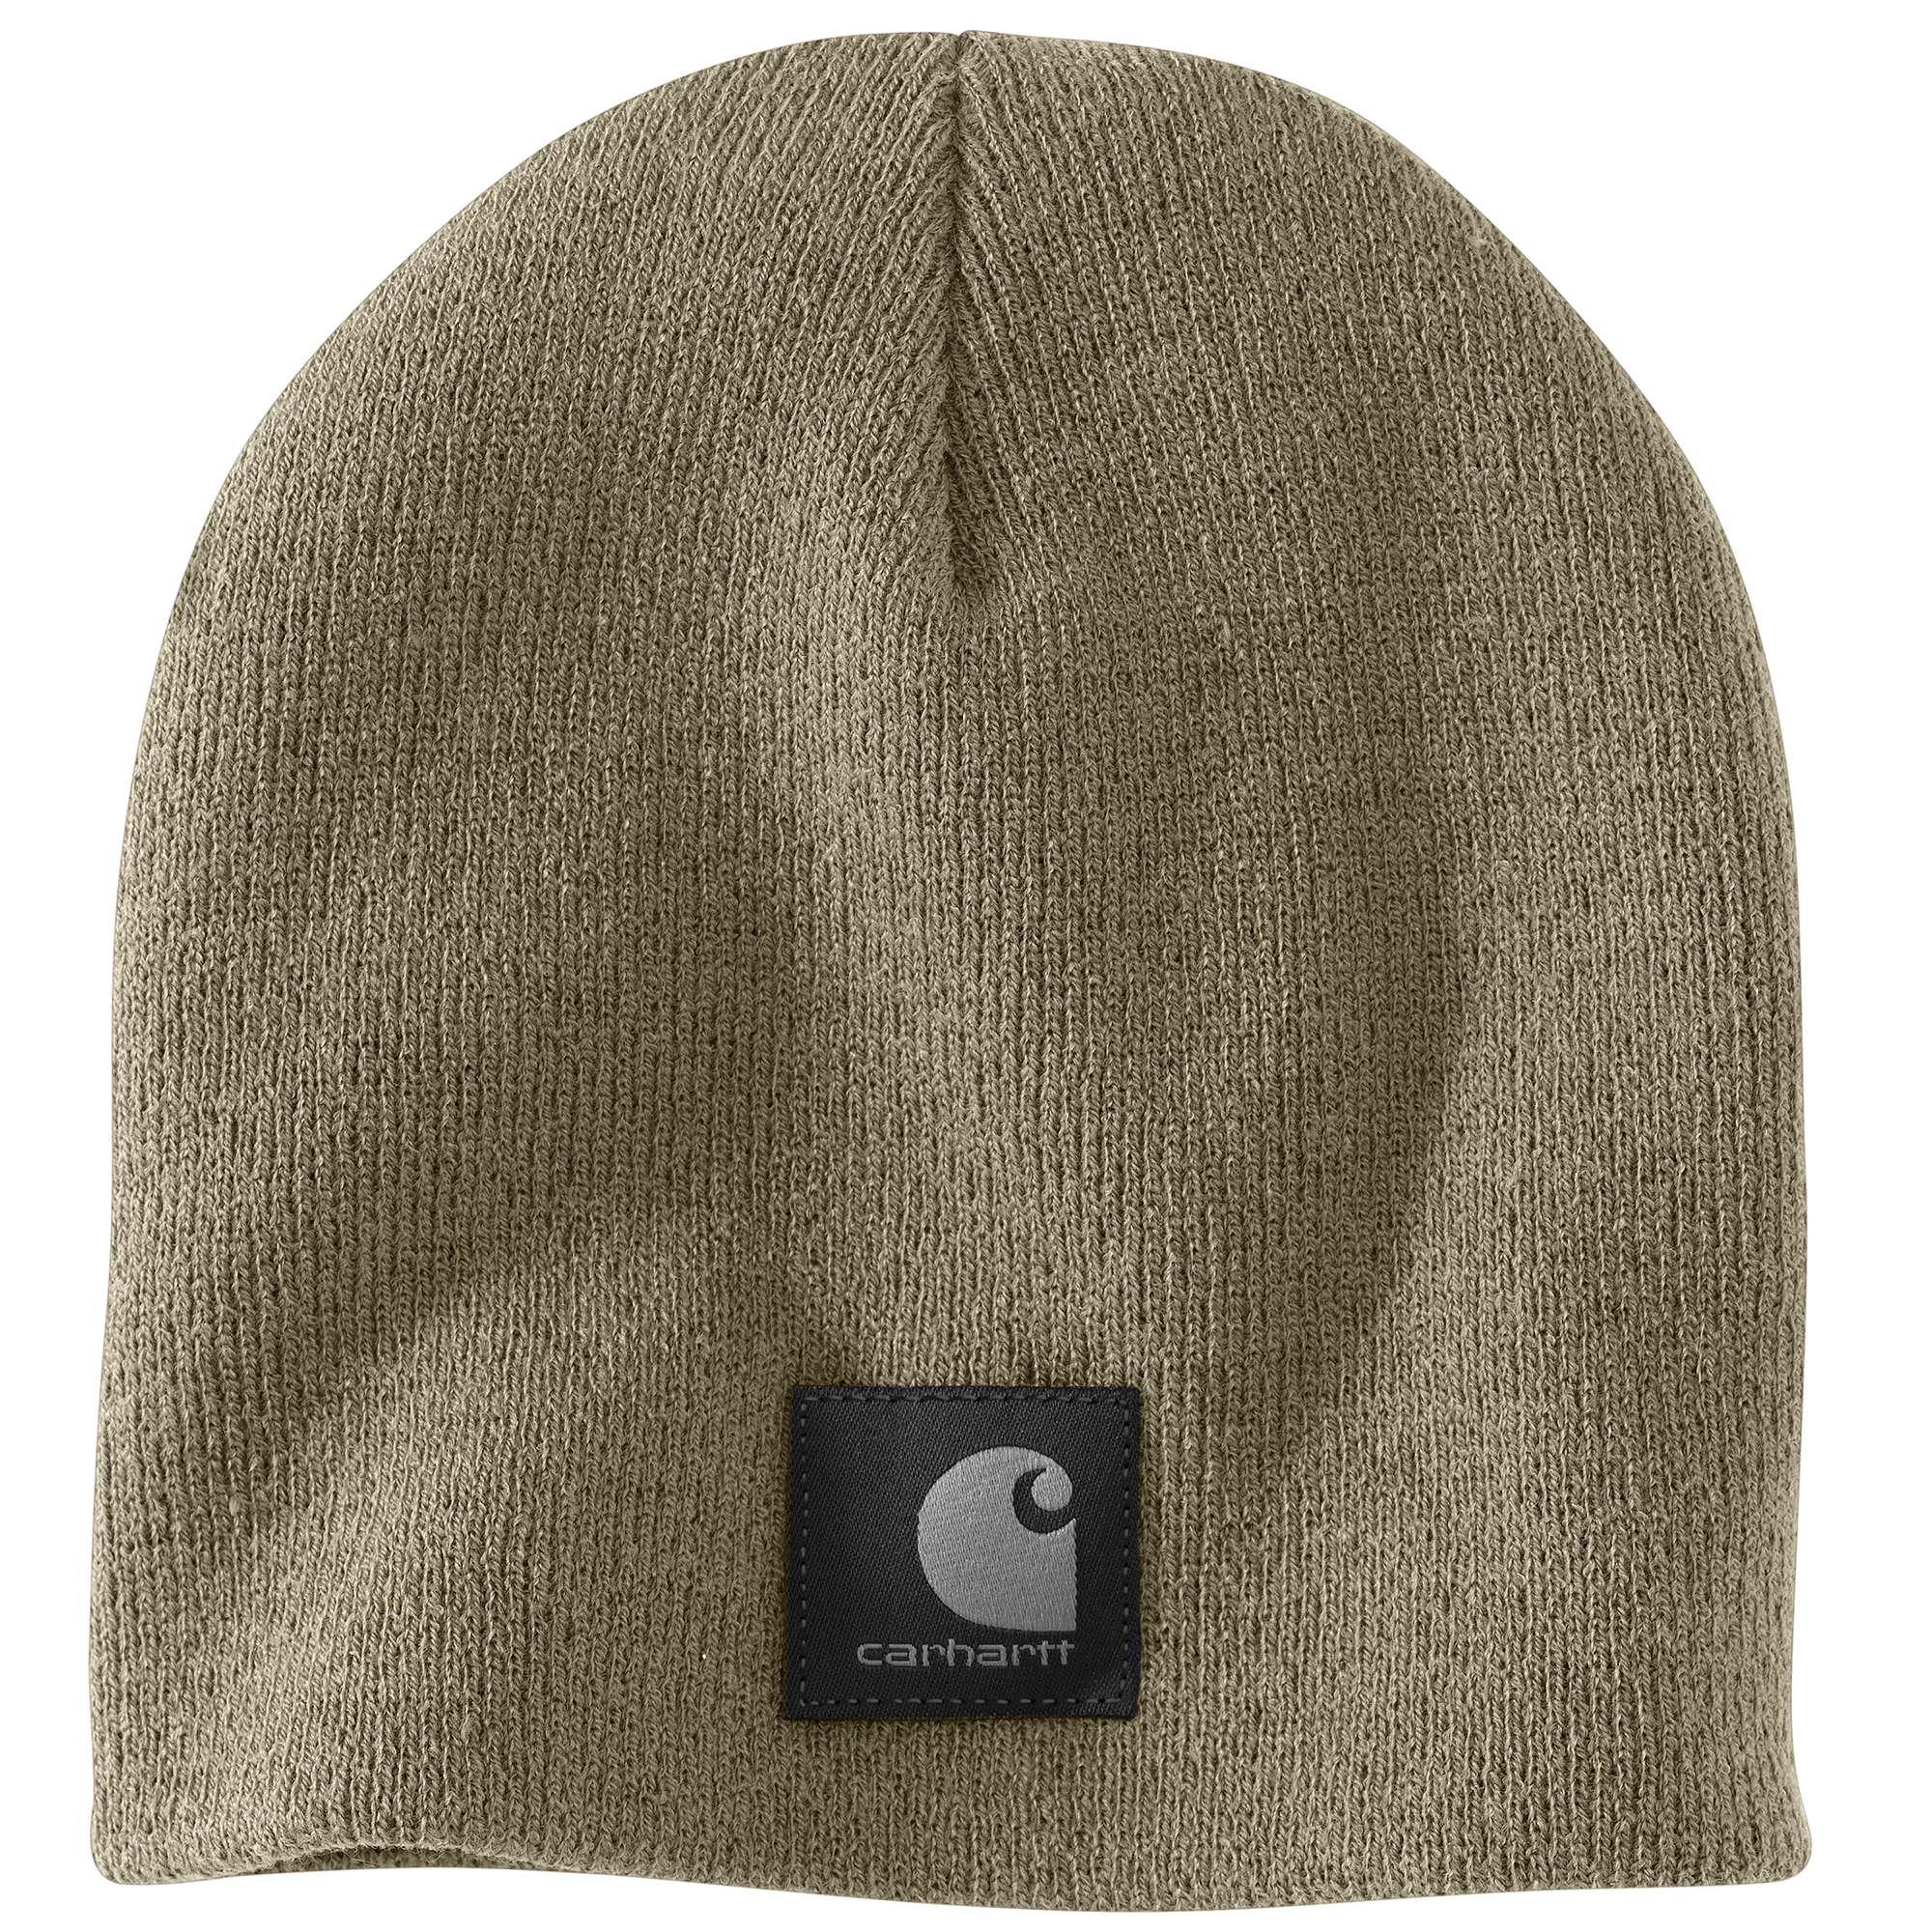 Carhartt Force Extremes™ Knit Hat